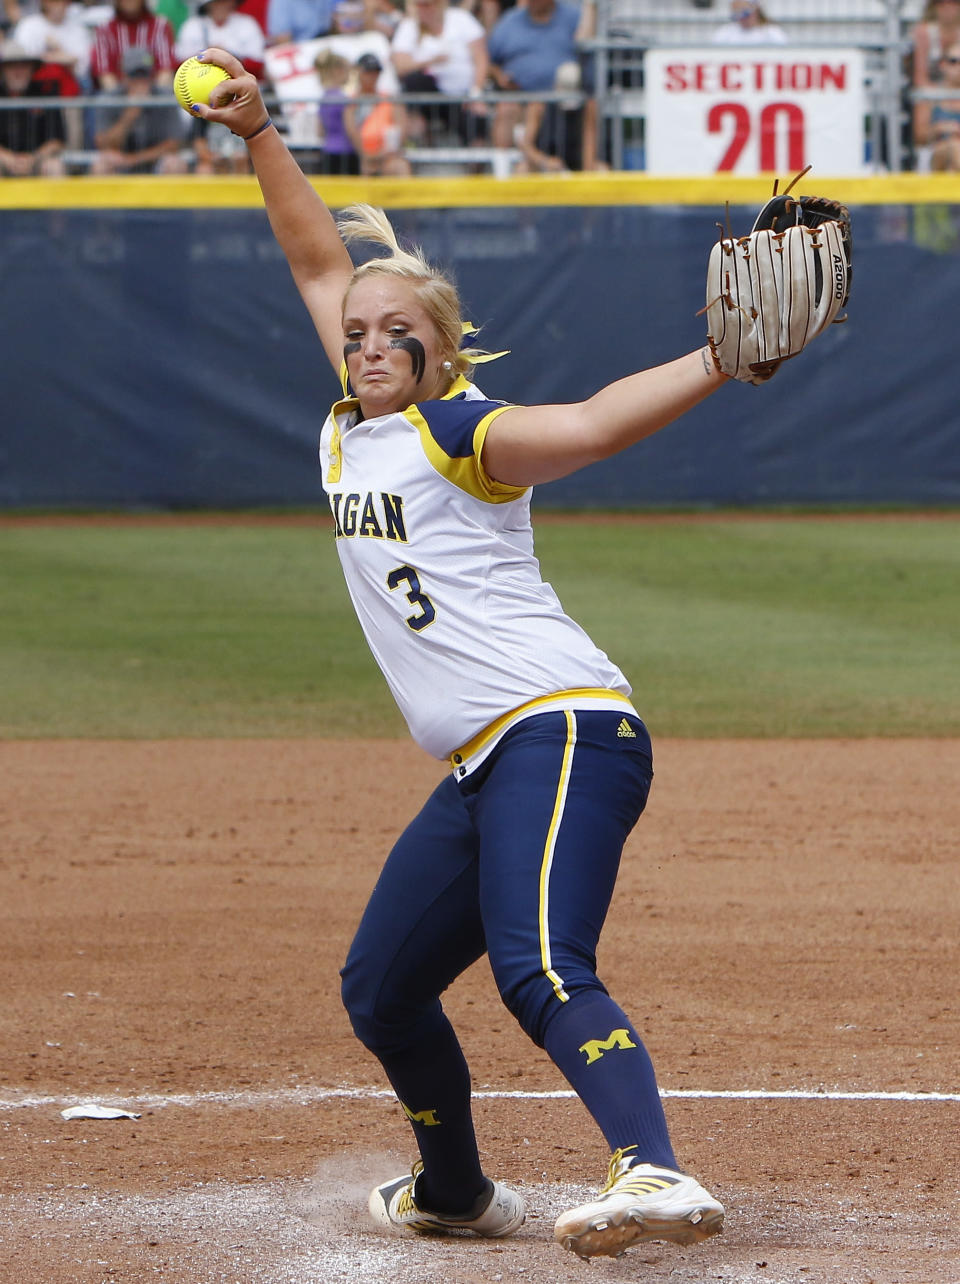 Michigan's Megan Betsa pitches in the second inning during an NCAA Women's College World Series softball game against LSU in Oklahoma City, Sunday, May 31, 2015. Michigan won 6-3 and moves on to the championship series. (AP Photo/Alonzo Adams)